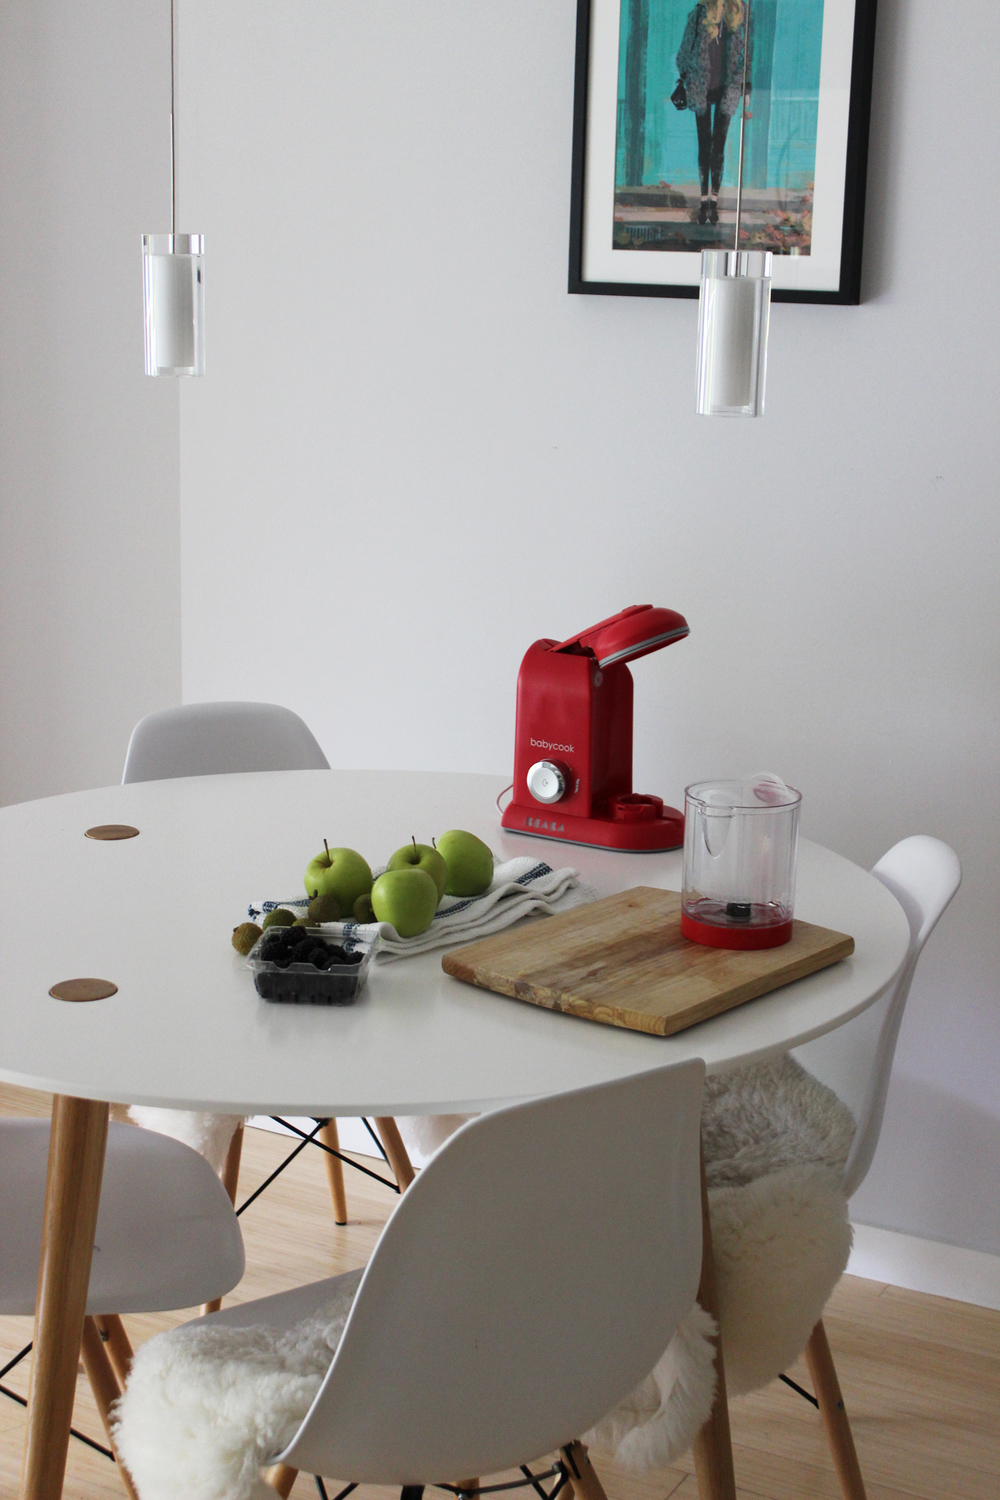 Beaba BabyCook  / IKEA table and sheepskins